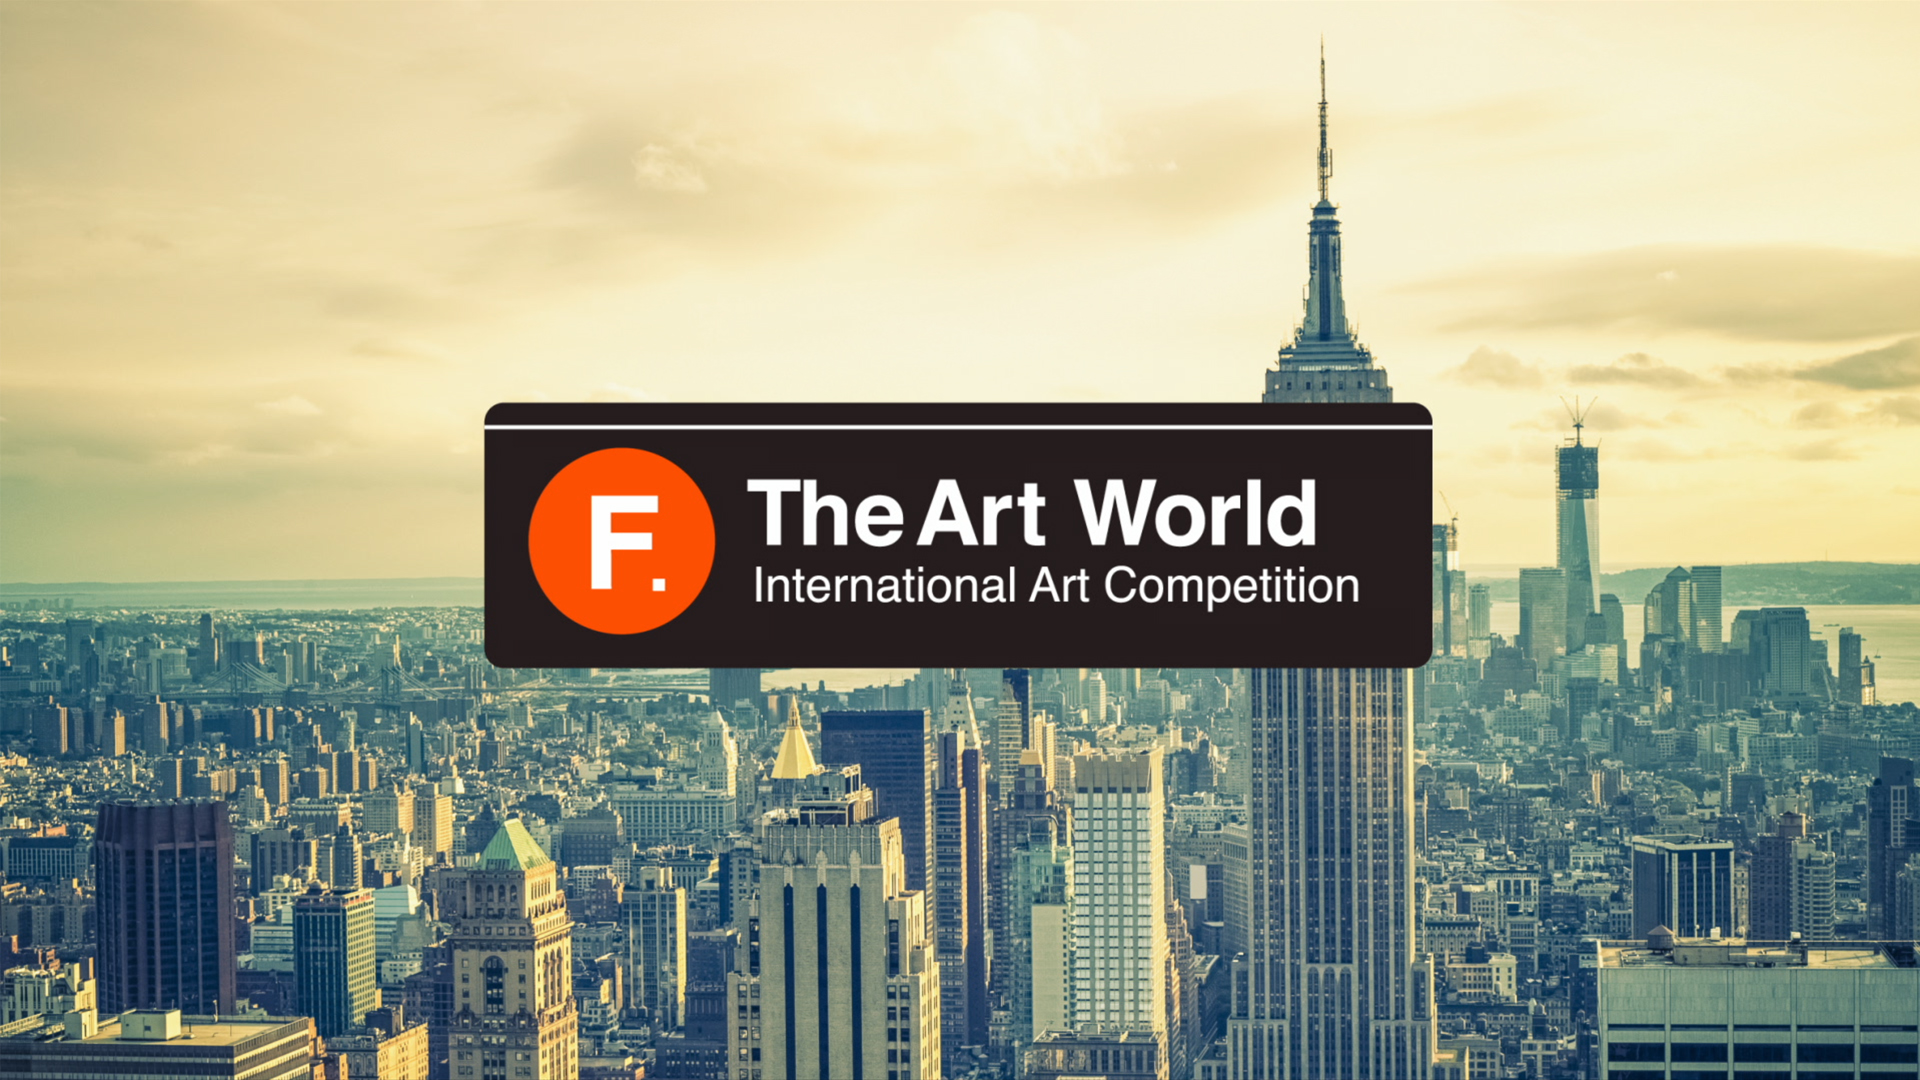 F The Art World – International Art Competition - logo